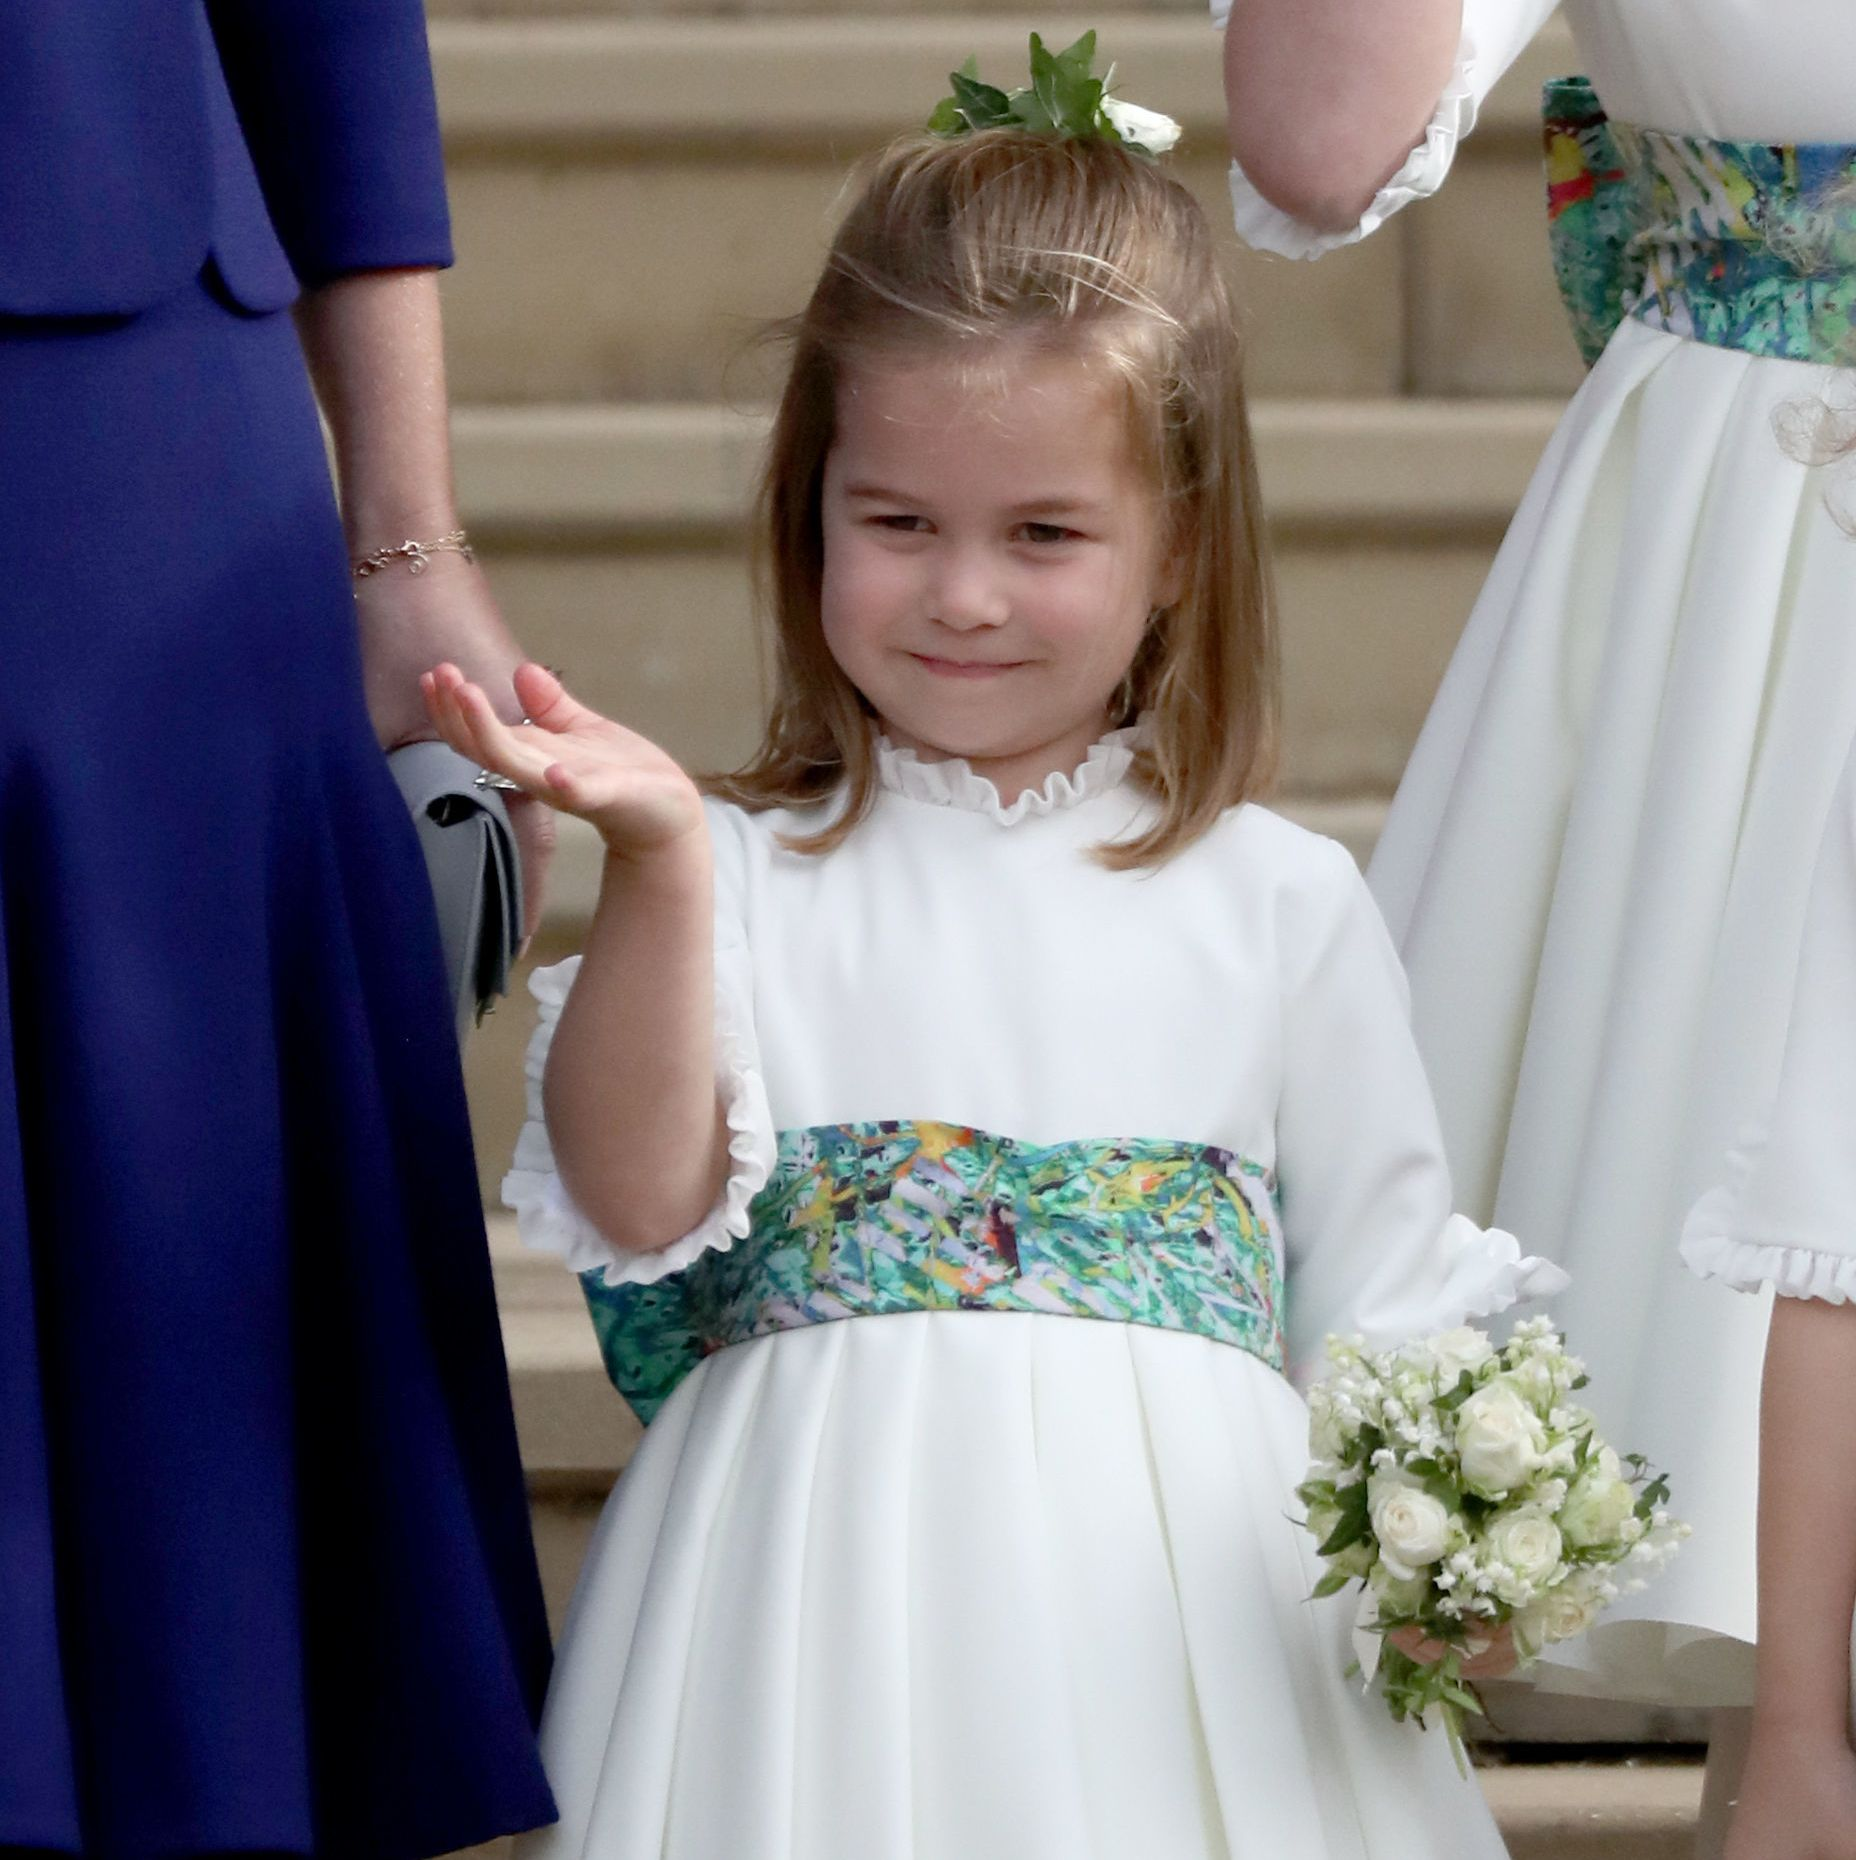 Here she is, waving on another set of steps at Princess Eugenie's royal wedding last fall.